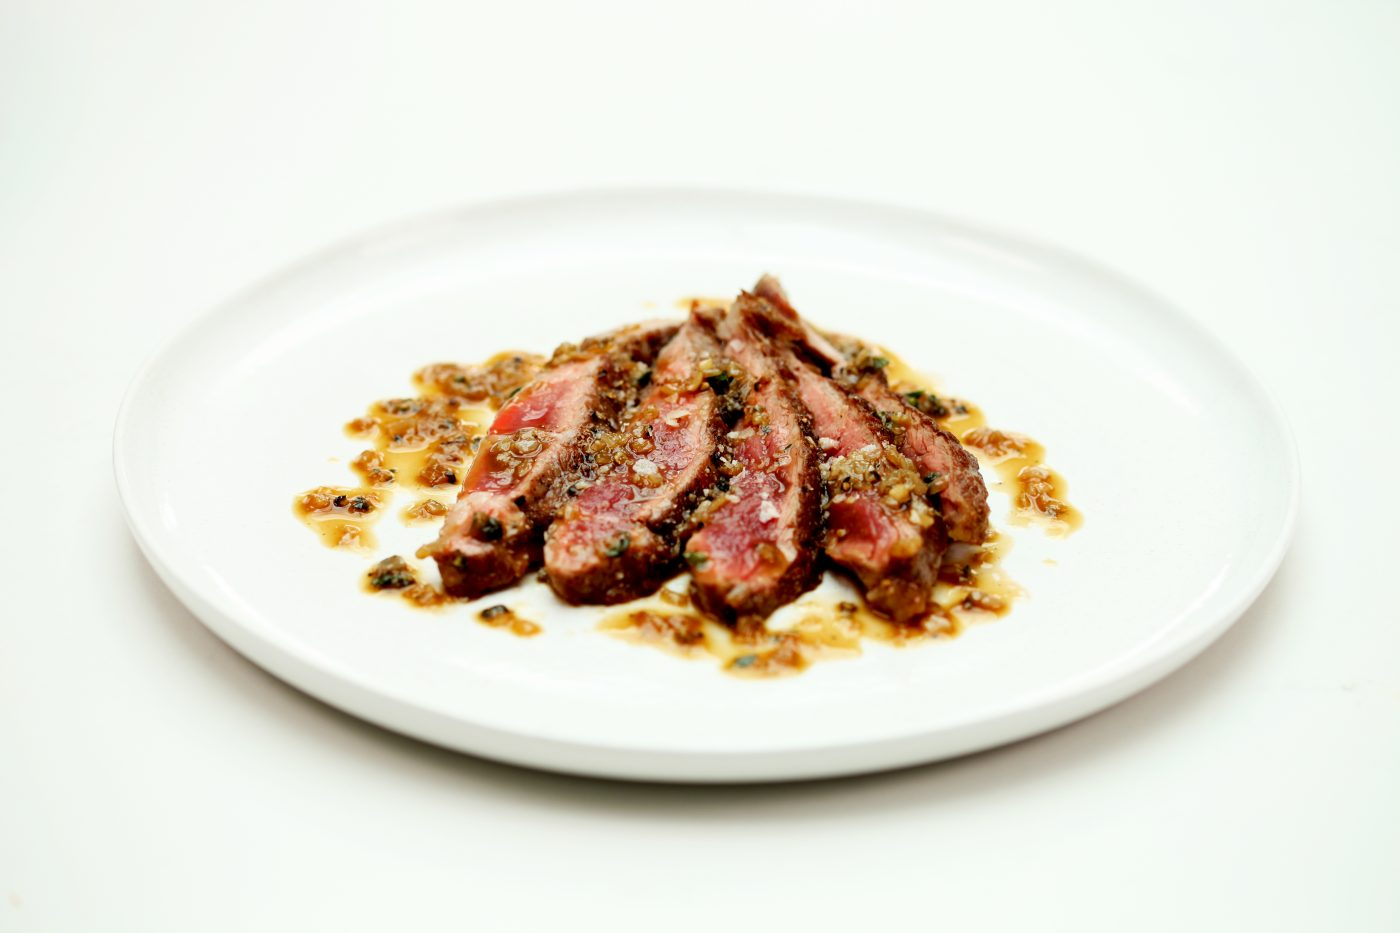 Abanico Iberico Pork with Peppercorn Sauce